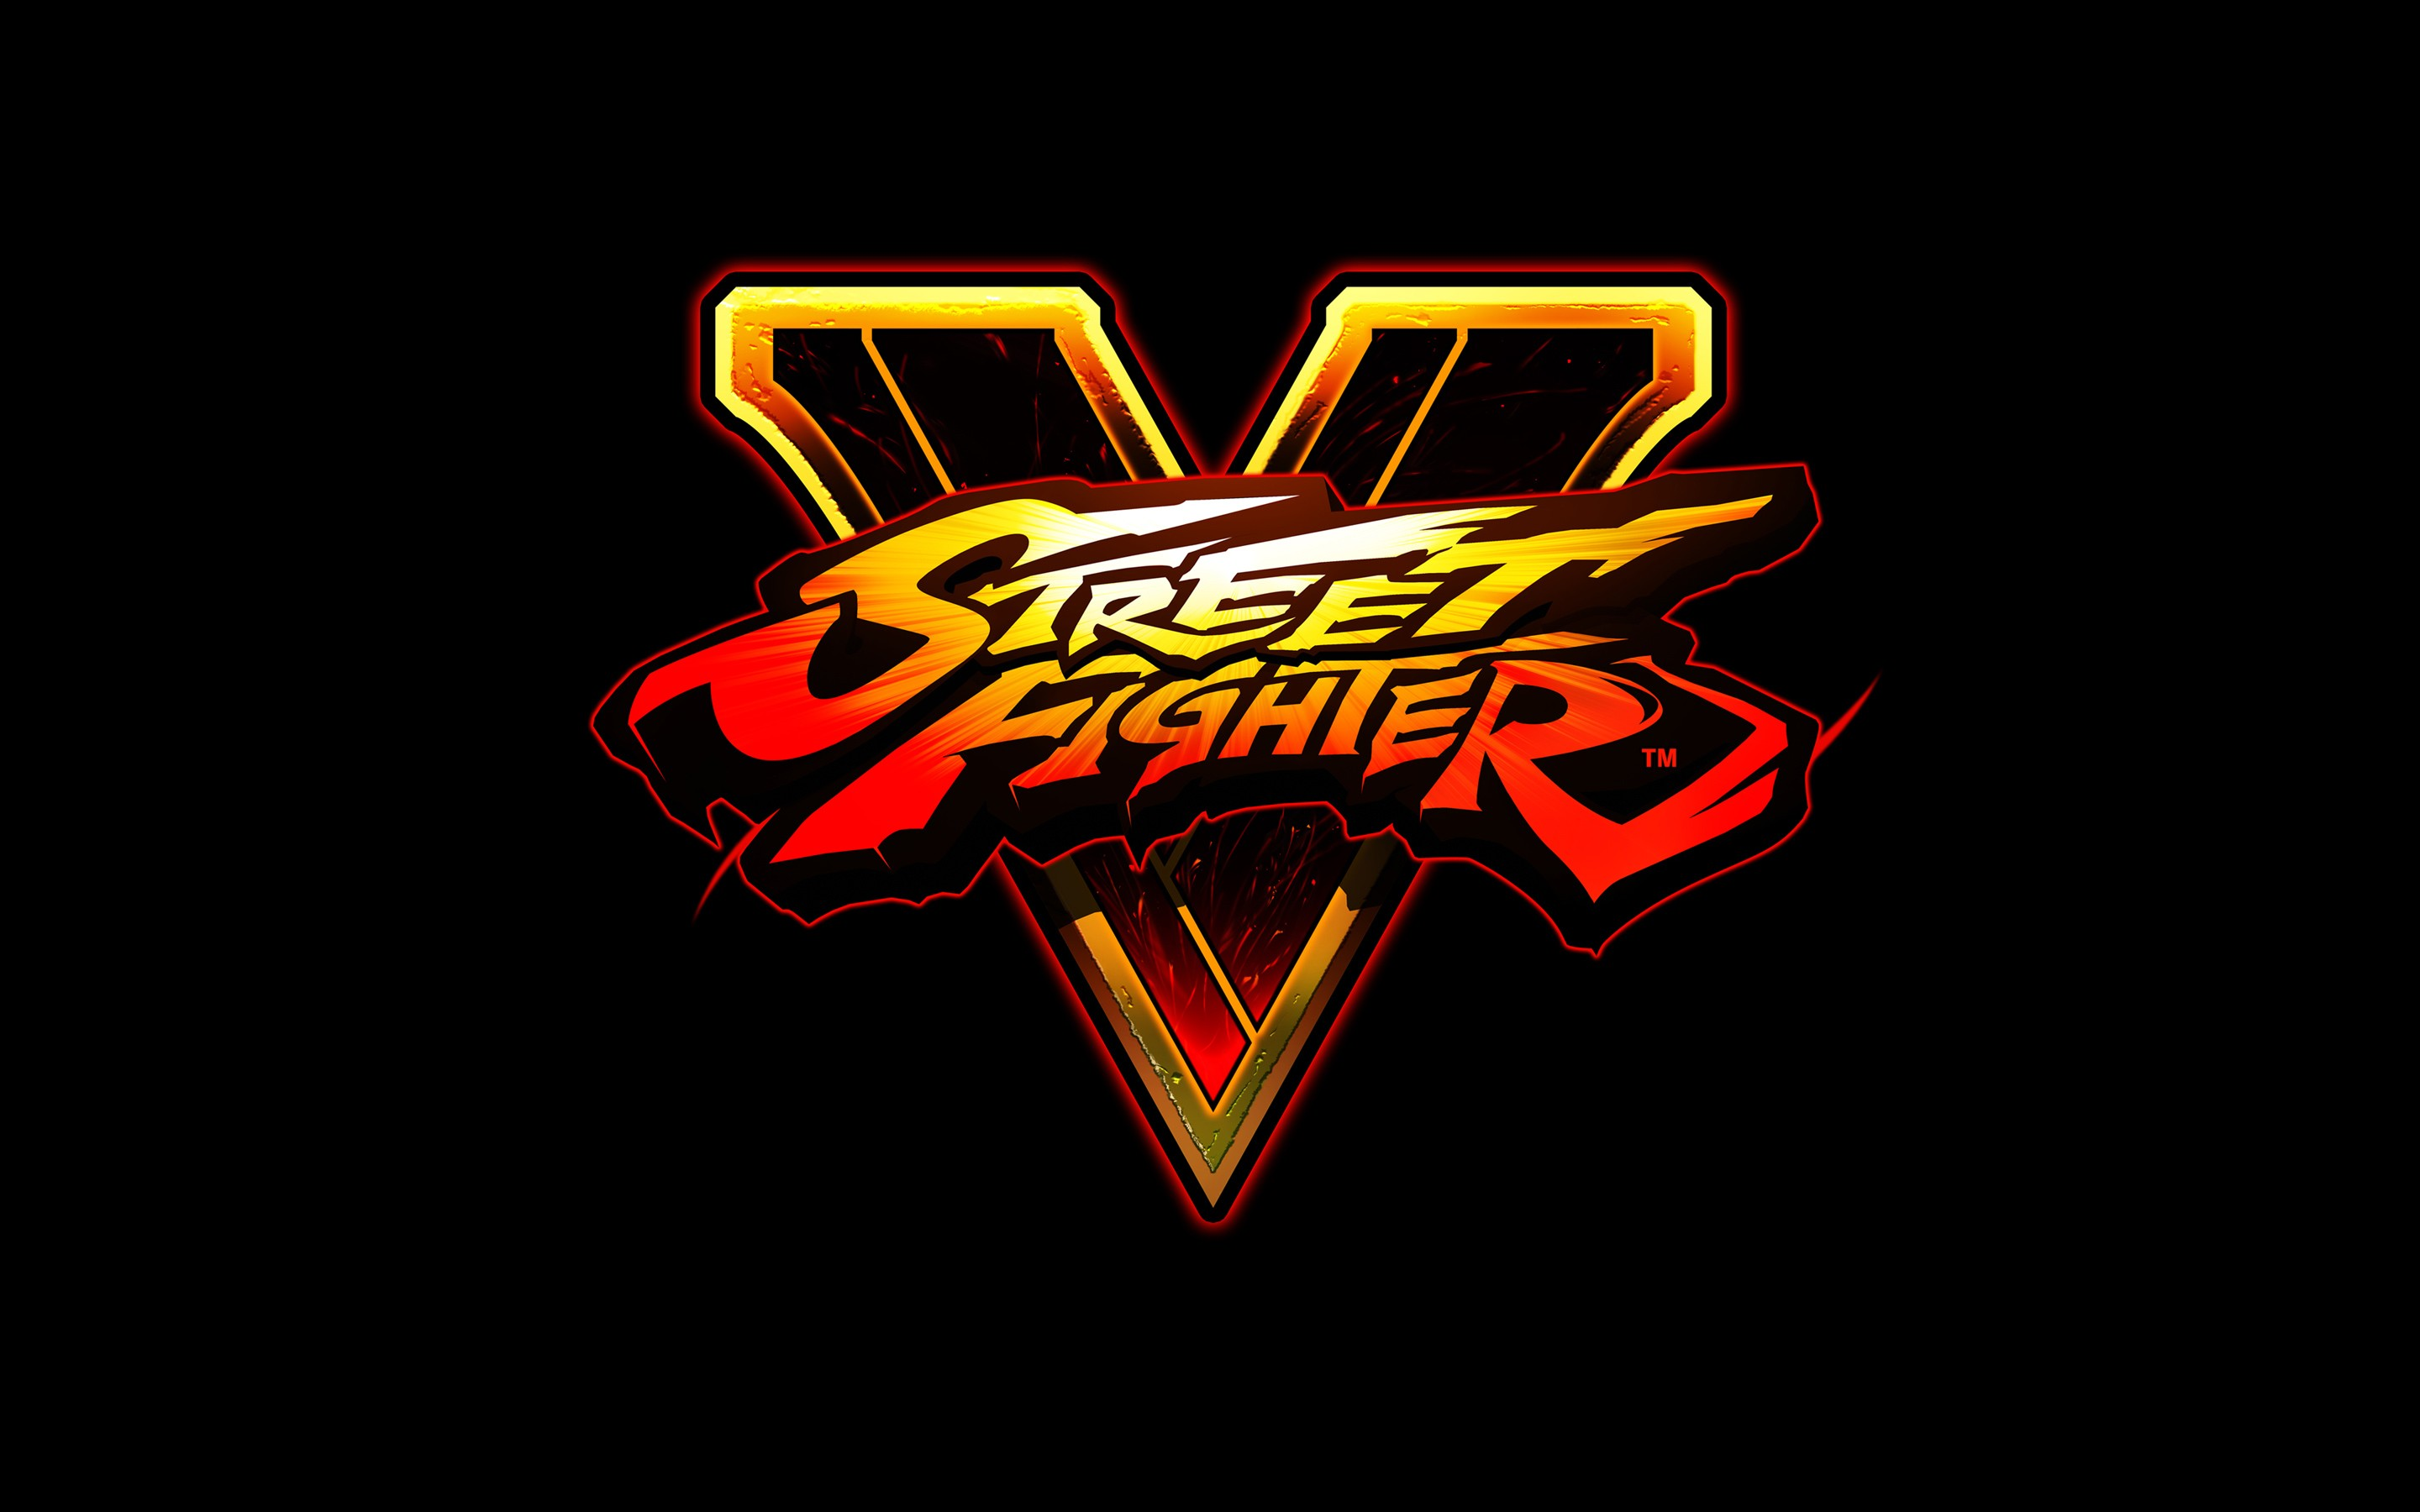 Street Fighter 5 Wallpaper Download Free Stunning Wallpapers